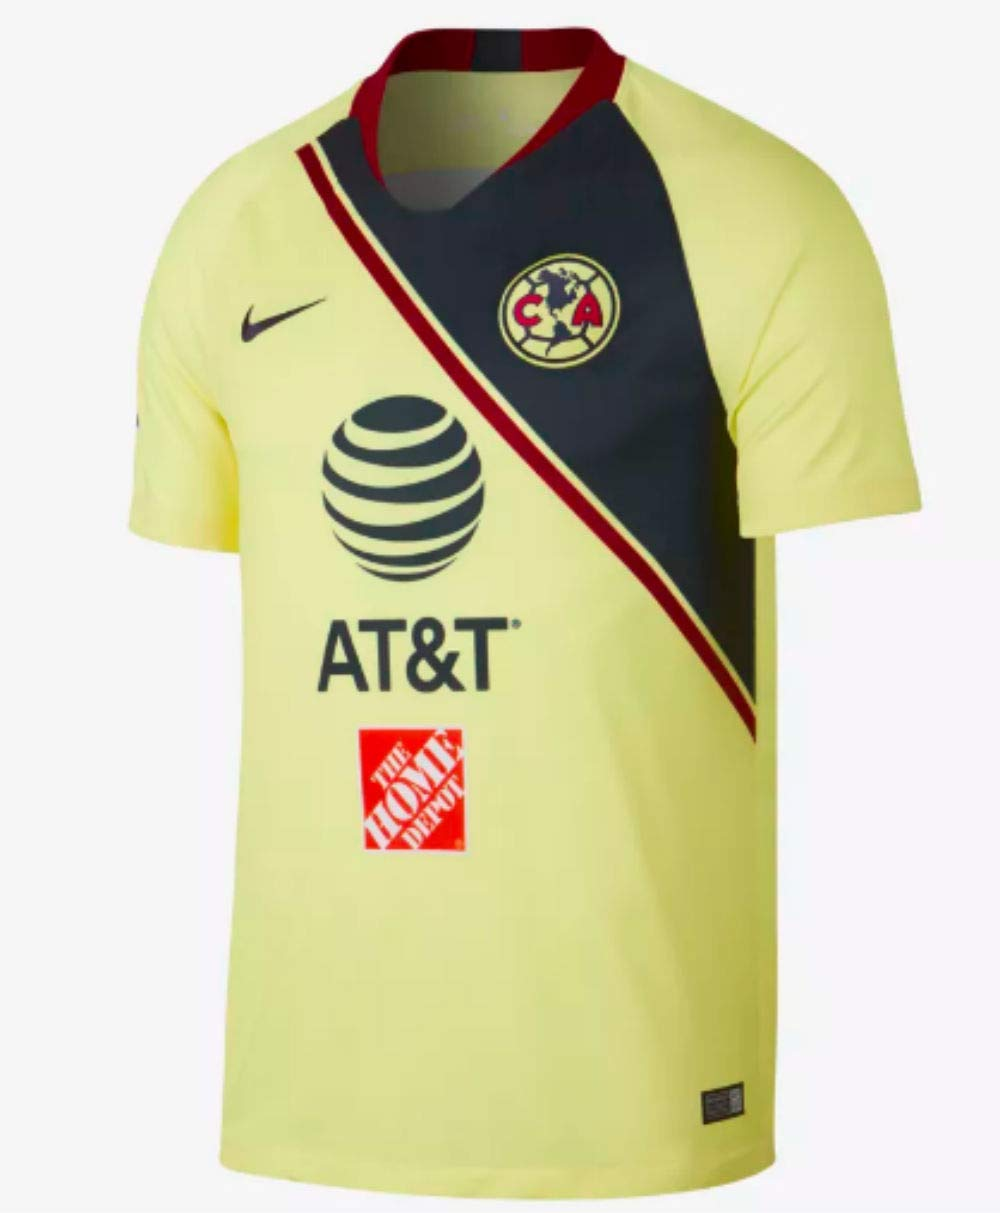 Amazon.com : ProApparels Diego Lainez Club America Jersey (Official Jersey 2018/2019) : Sports & Outdoors